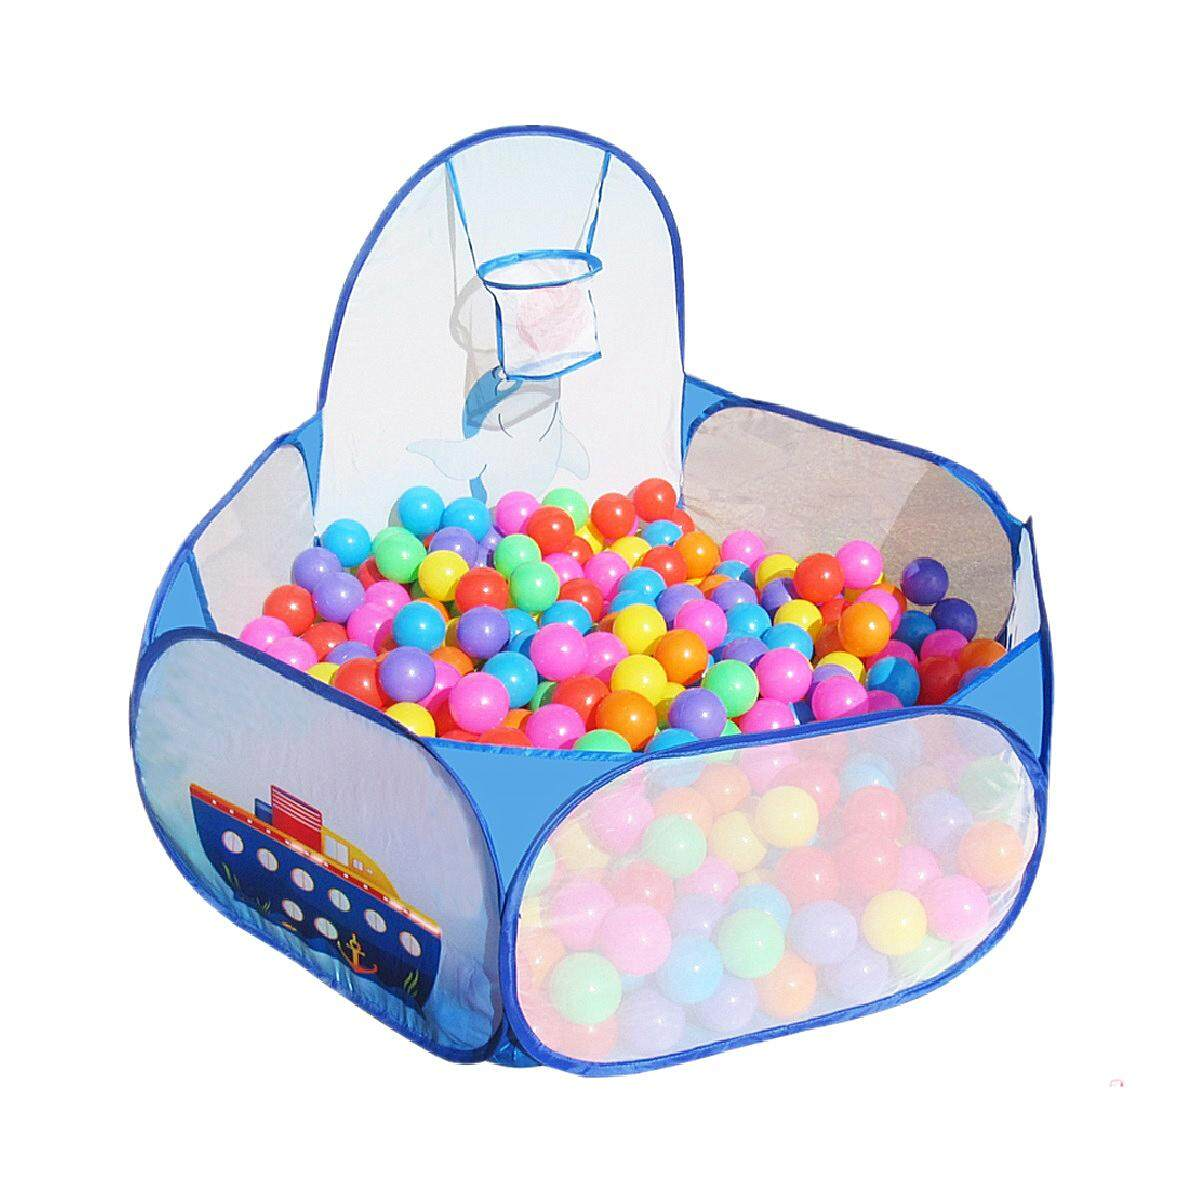 Hình ảnh Portable Kids Child Ball Pit Pool Play Tent for Baby Indoor Outdoor Game Toy New